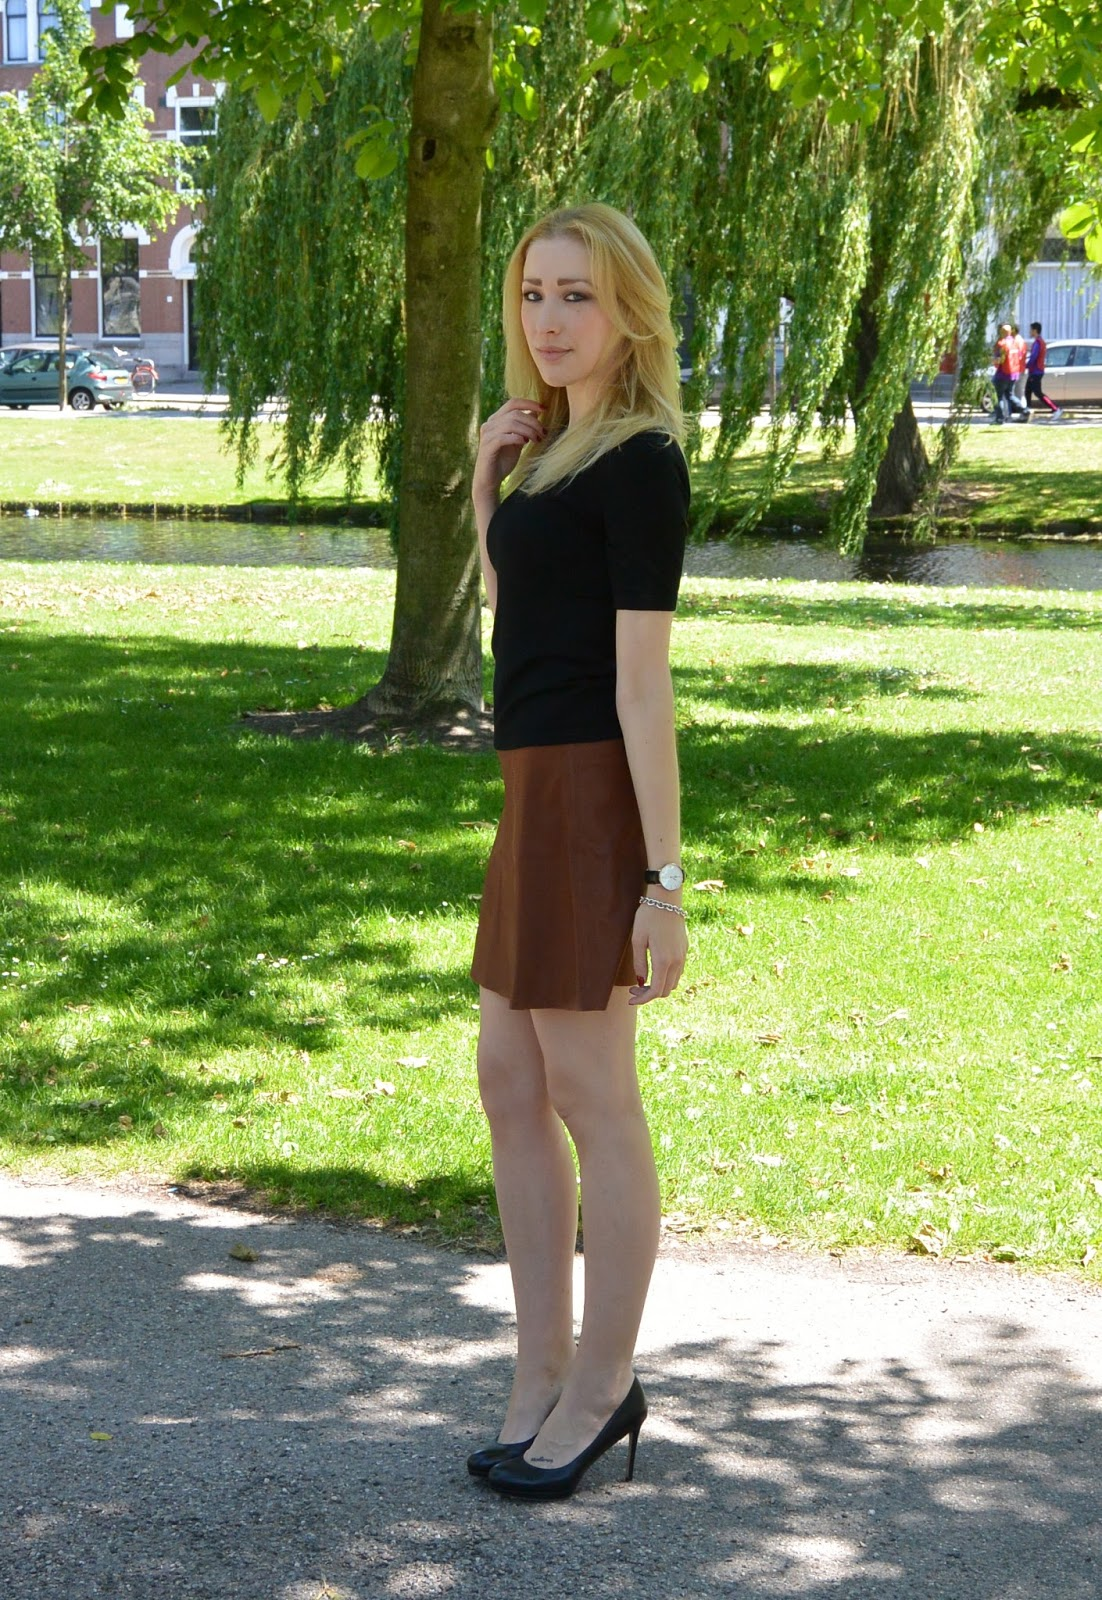 Brown Leather Skirt and Black Shirt | Dashingly Elevating